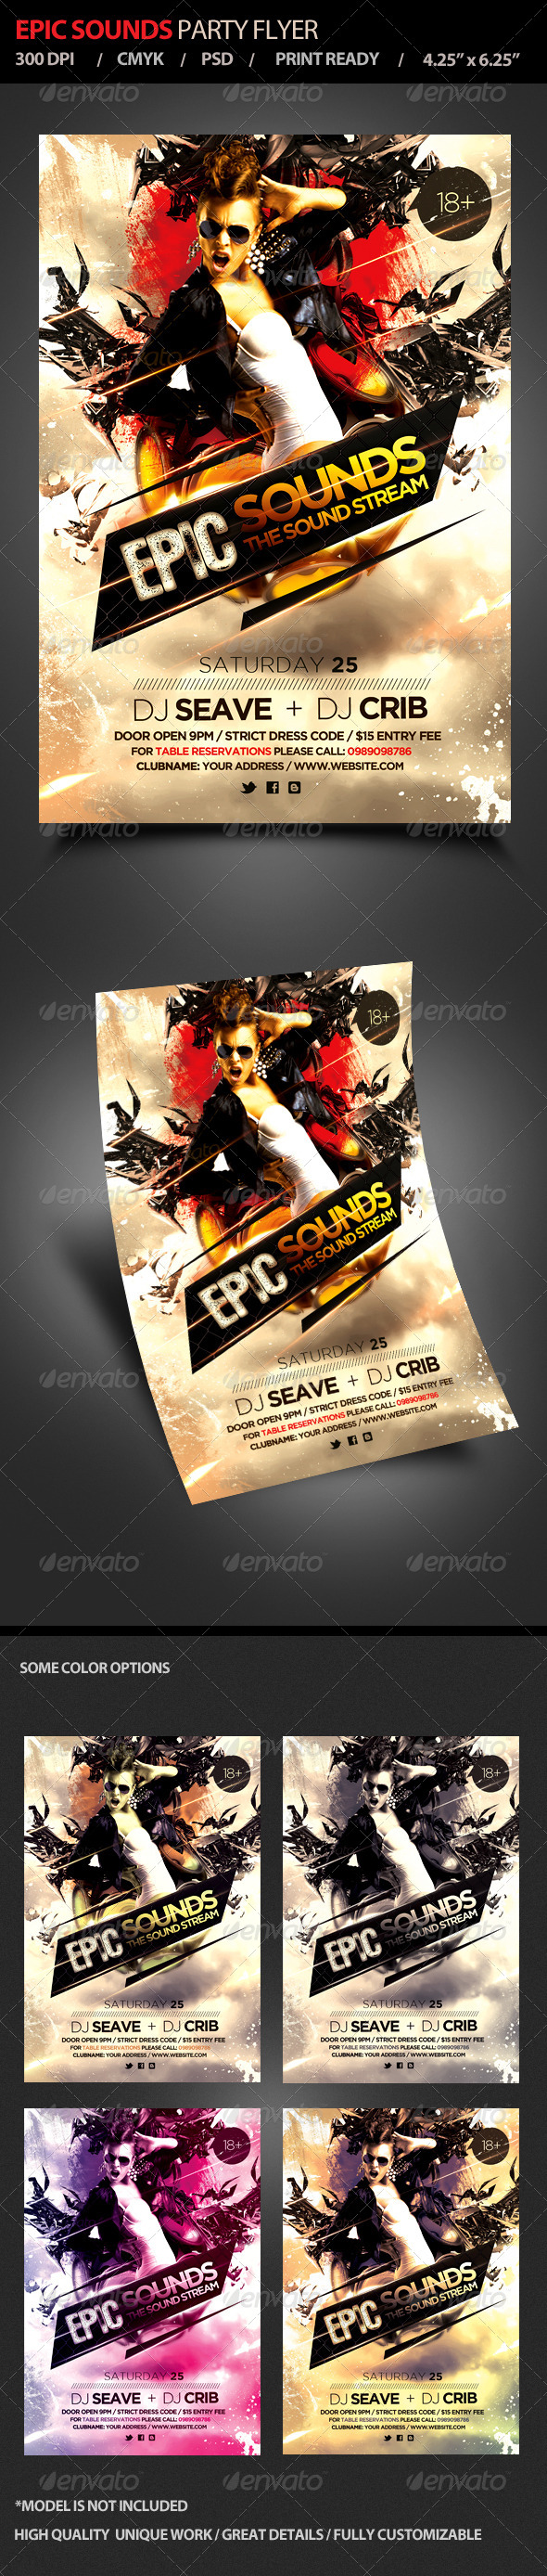 GraphicRiver Epic Sounds Party Flyer 4752526